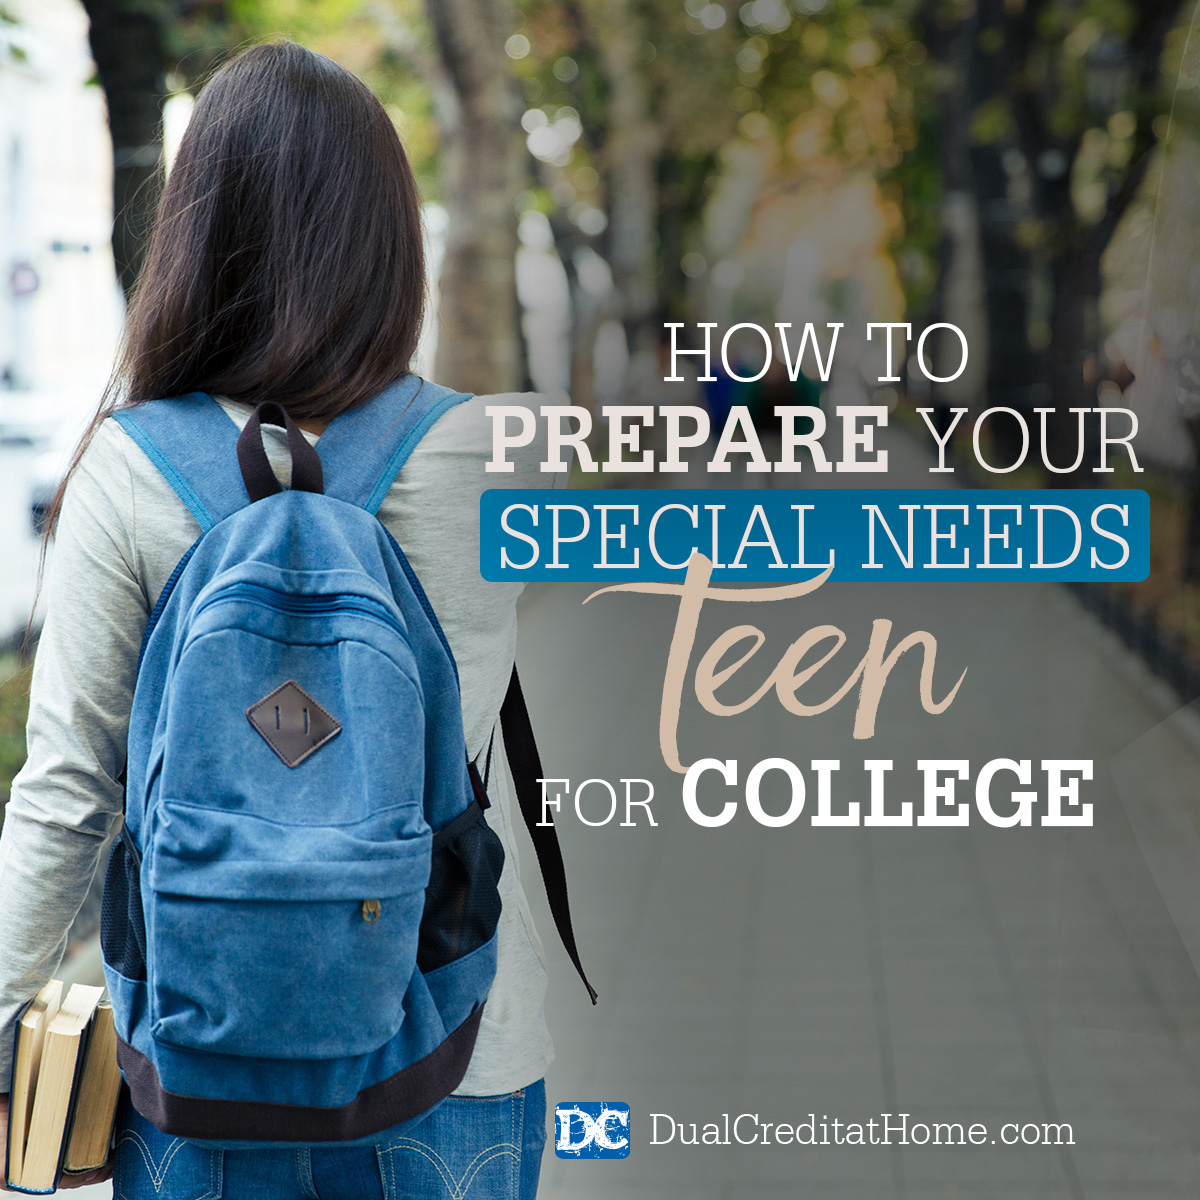 How to Prepare Your Special Needs Teen for College